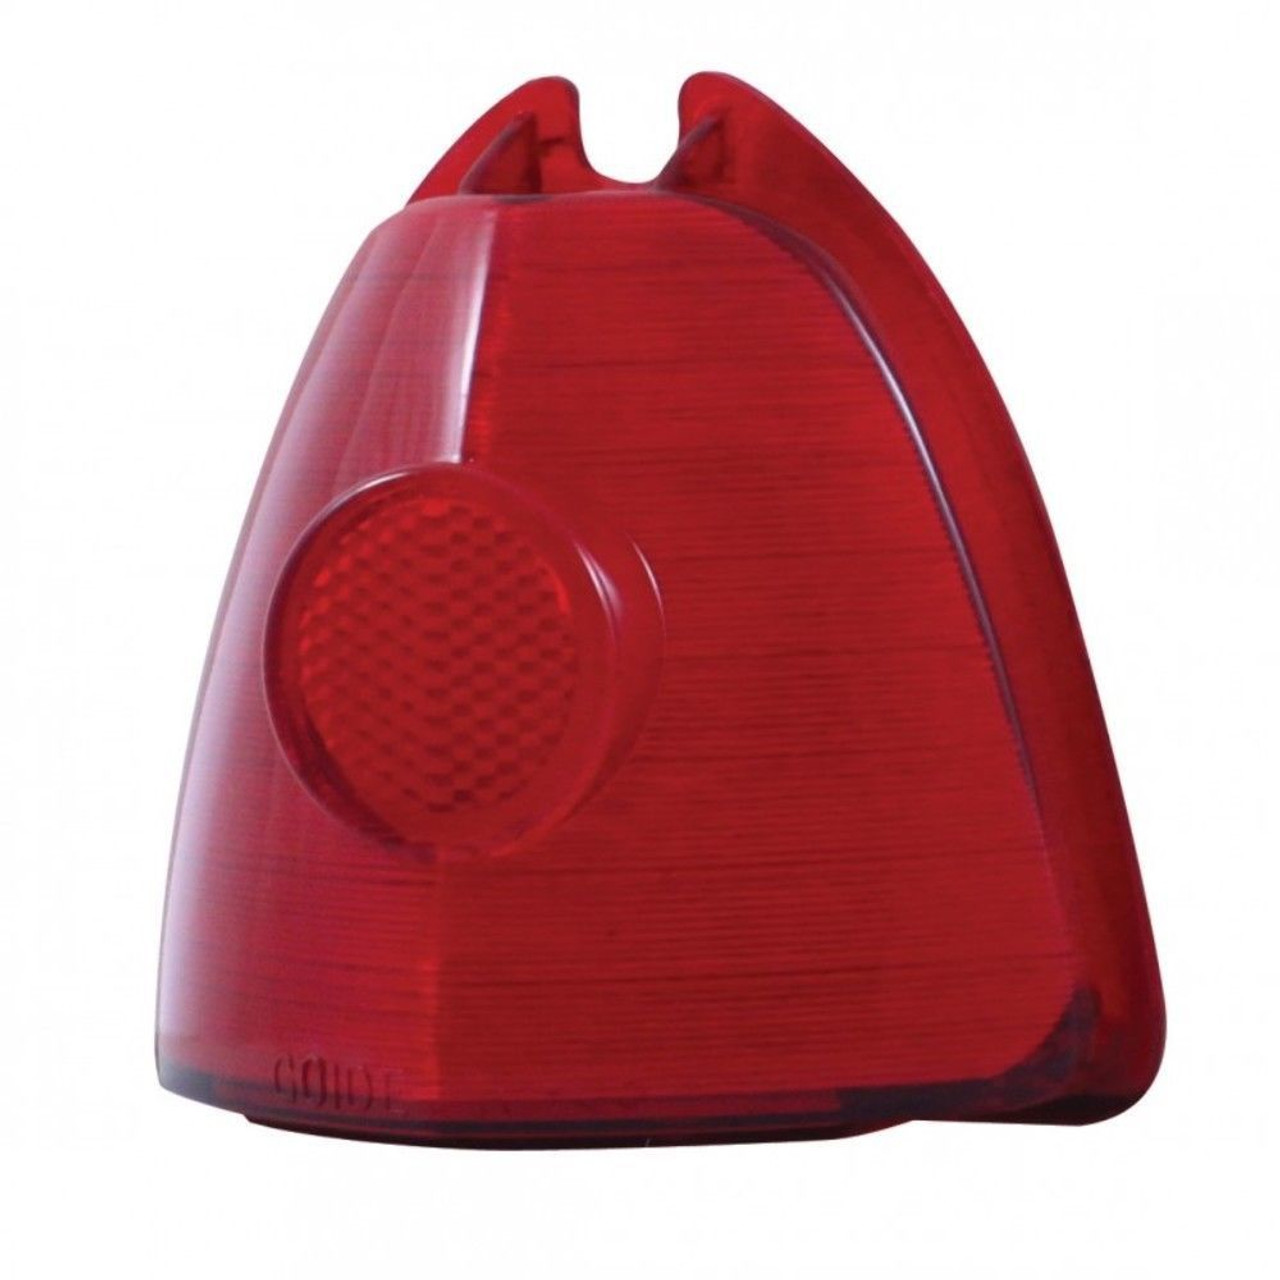 1953 Chevy & GMC Red Plasic Incandescent Stop & Tail Light Lens 5943403